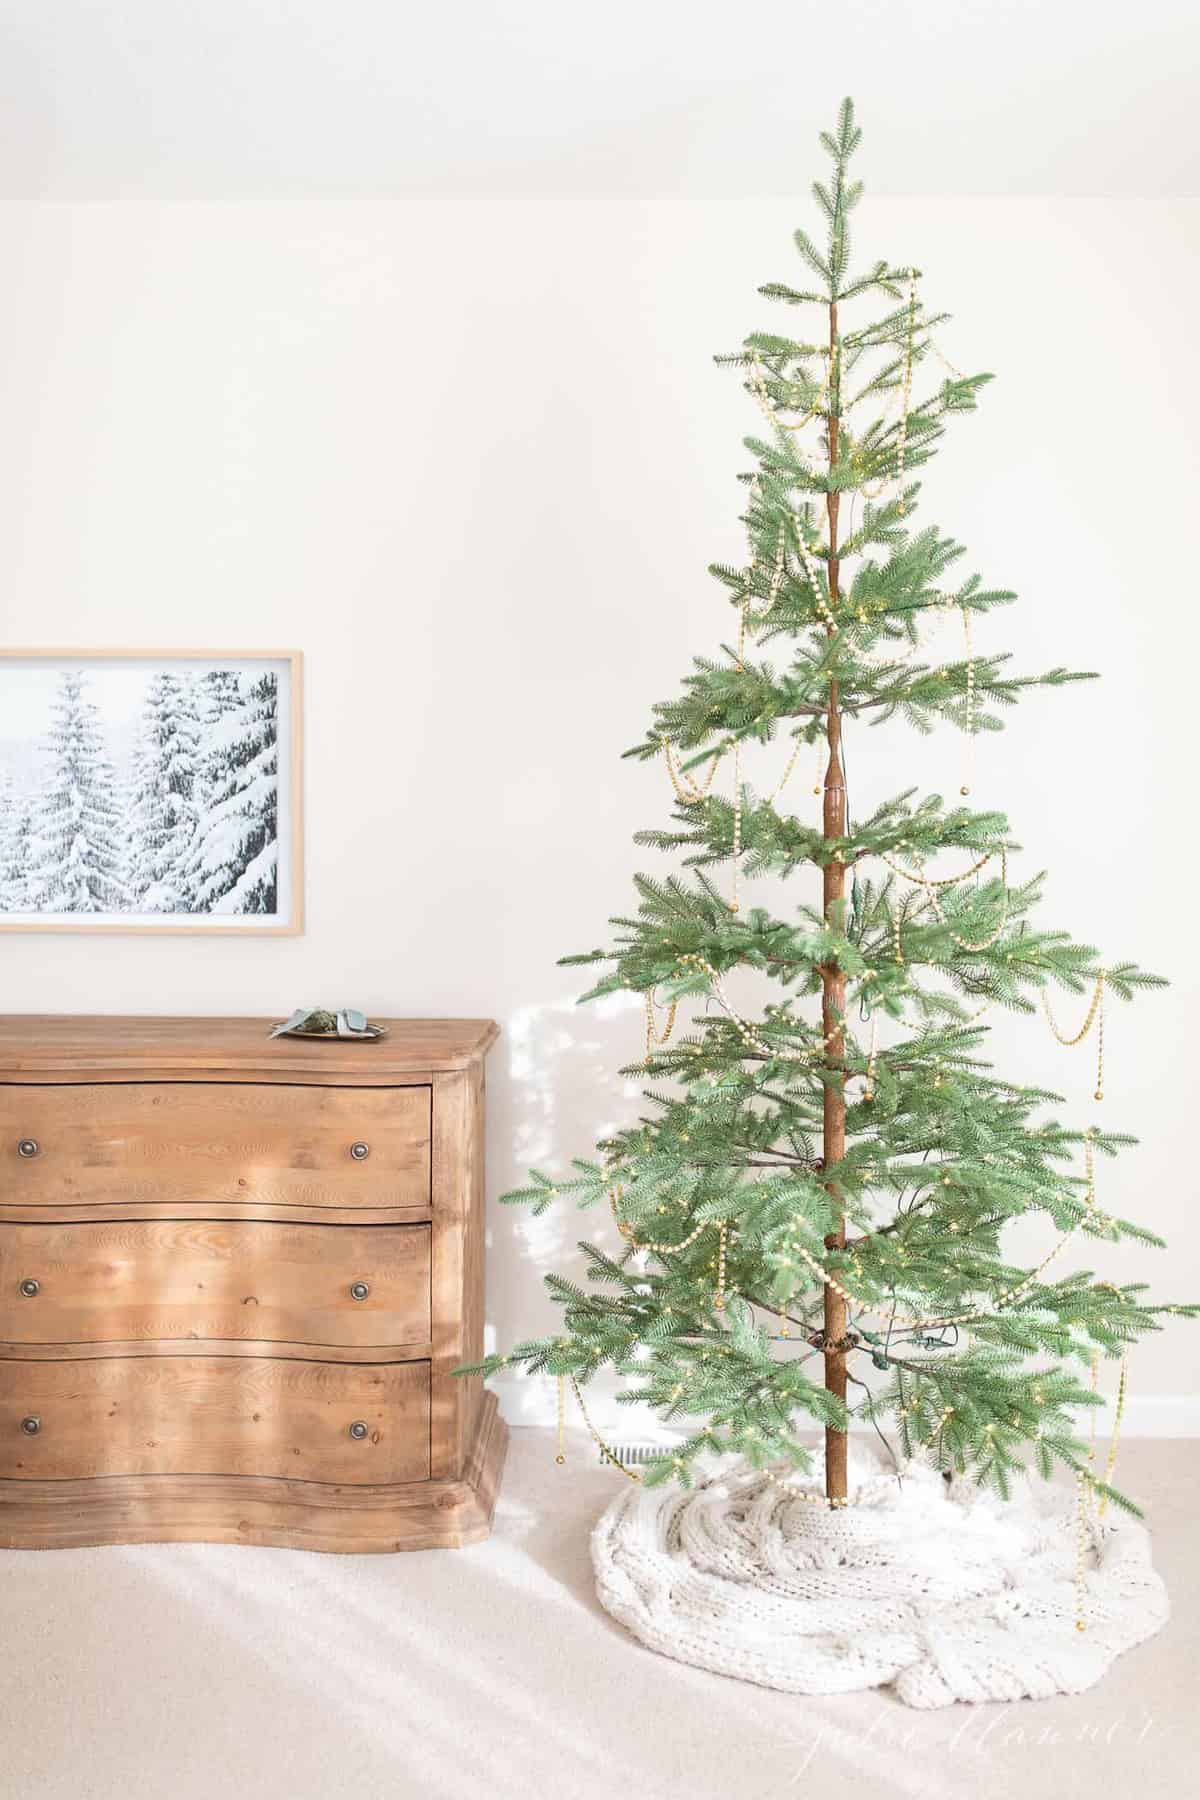 Christmas bedroom decor with a pretty tree, soft wood dresser and art tv.